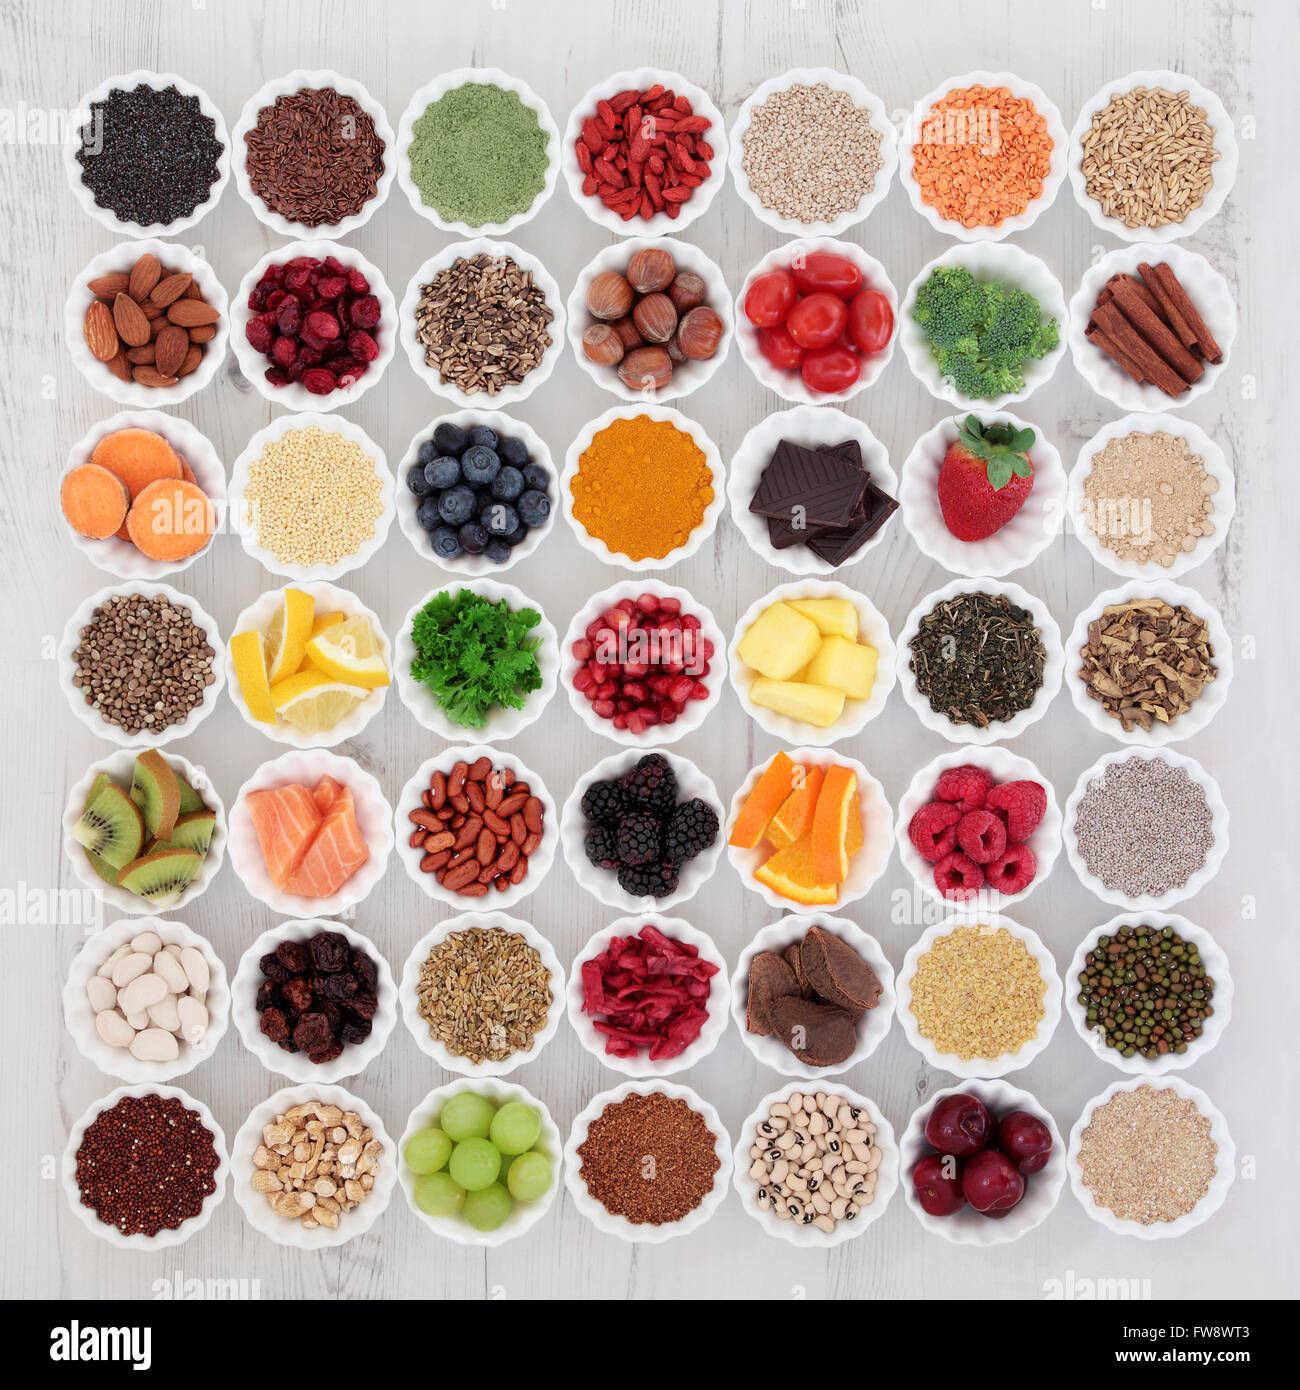 Large super food selection in porcelain crinkle bowls over distressed wooden background. High in vitamins and antioxidants. - Stock Image